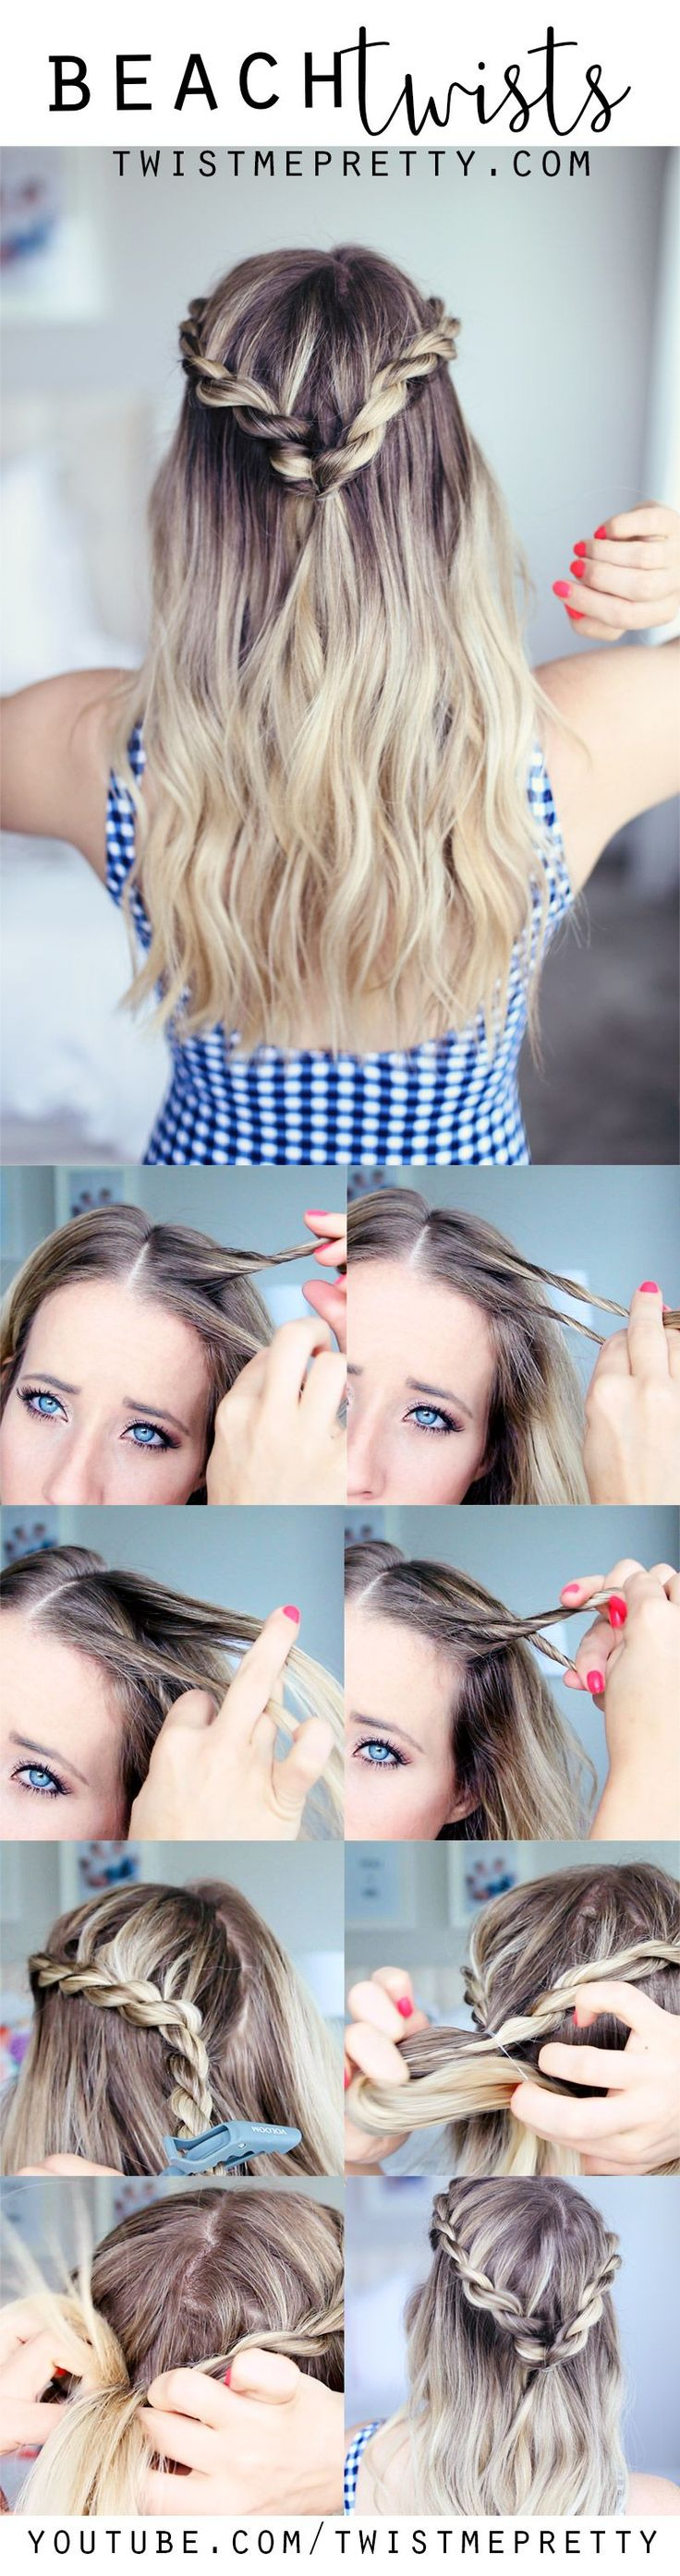 512 best Hair it is images on Pinterest